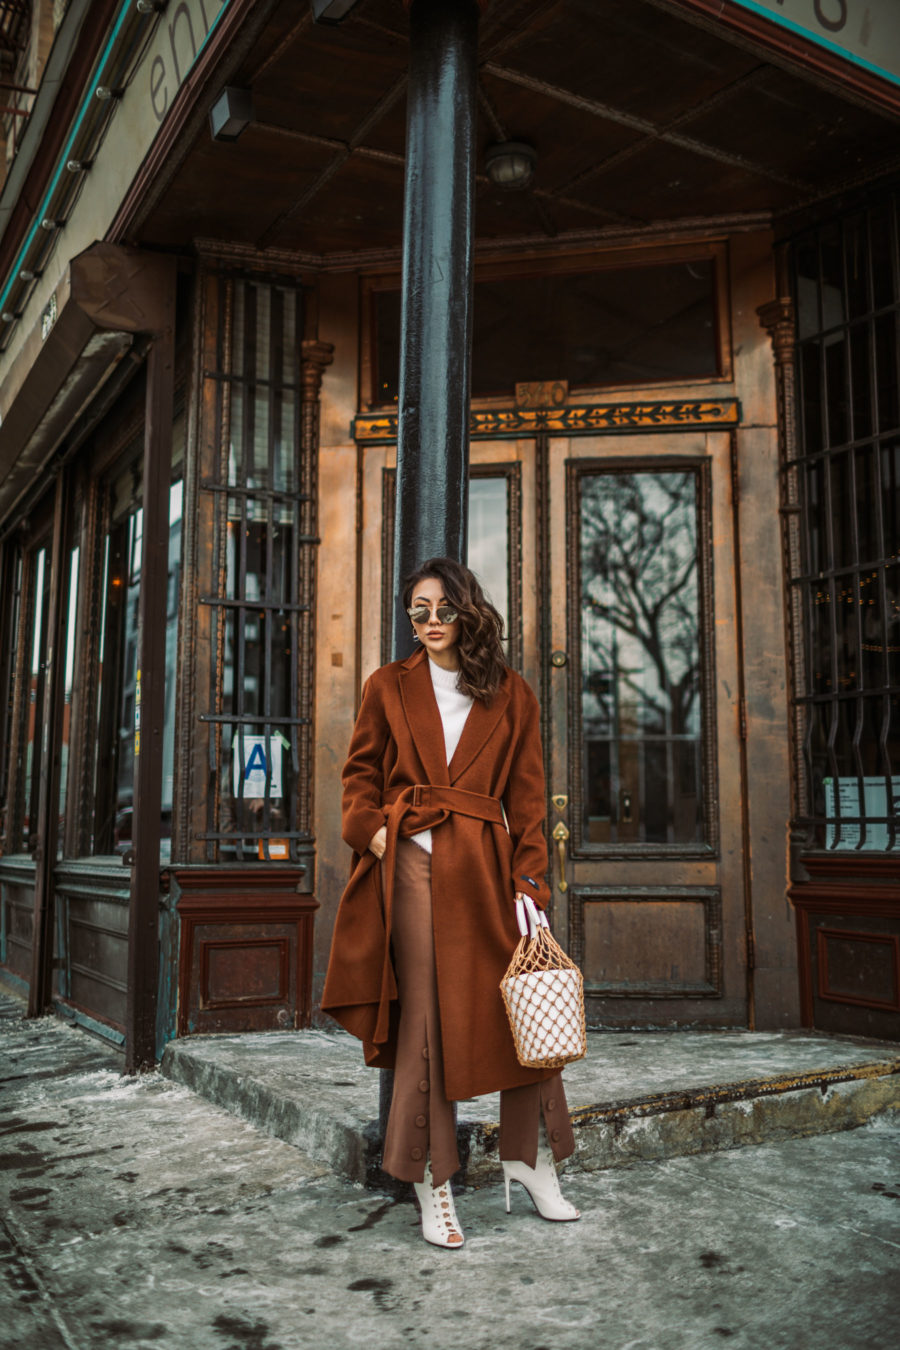 Winter wardrobe essentials - staud macrame bag, brown button trousers, wrap coat, robe coat, chic winter outfit, new york fashion blogger, aviator sunglasses, brown monochromatic outfit // Notjessfashion.com